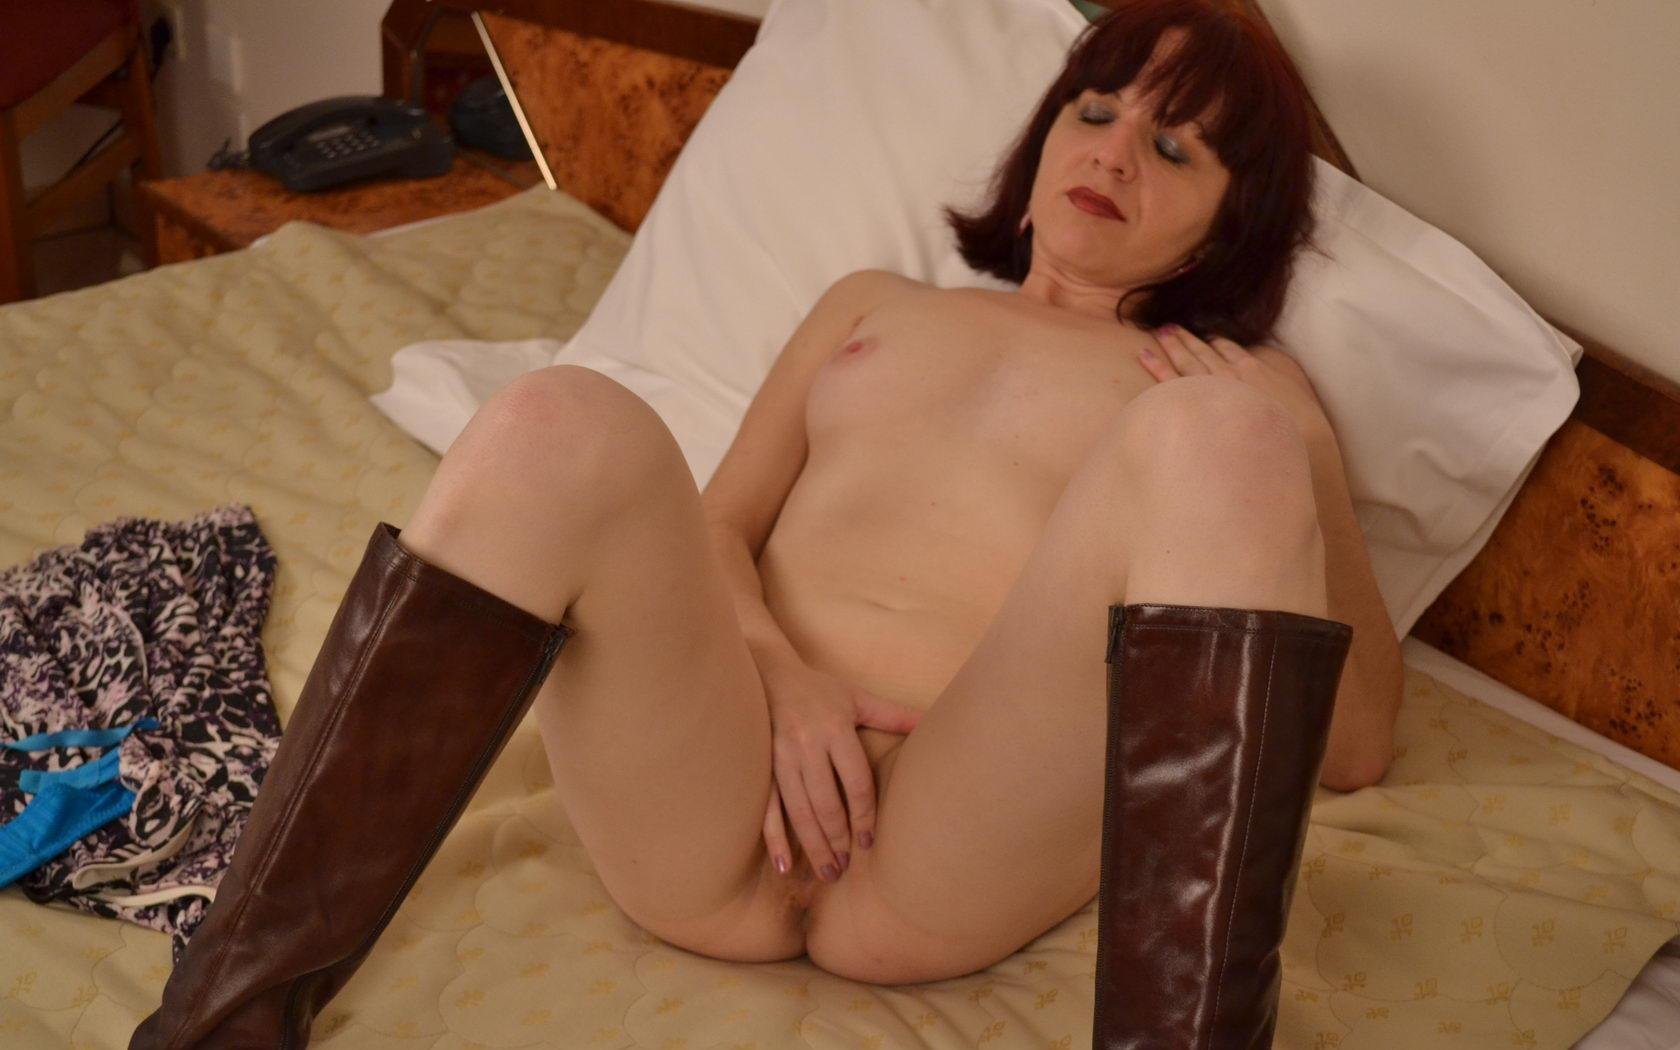 horny granny enjoys is very wet and lonely tonight